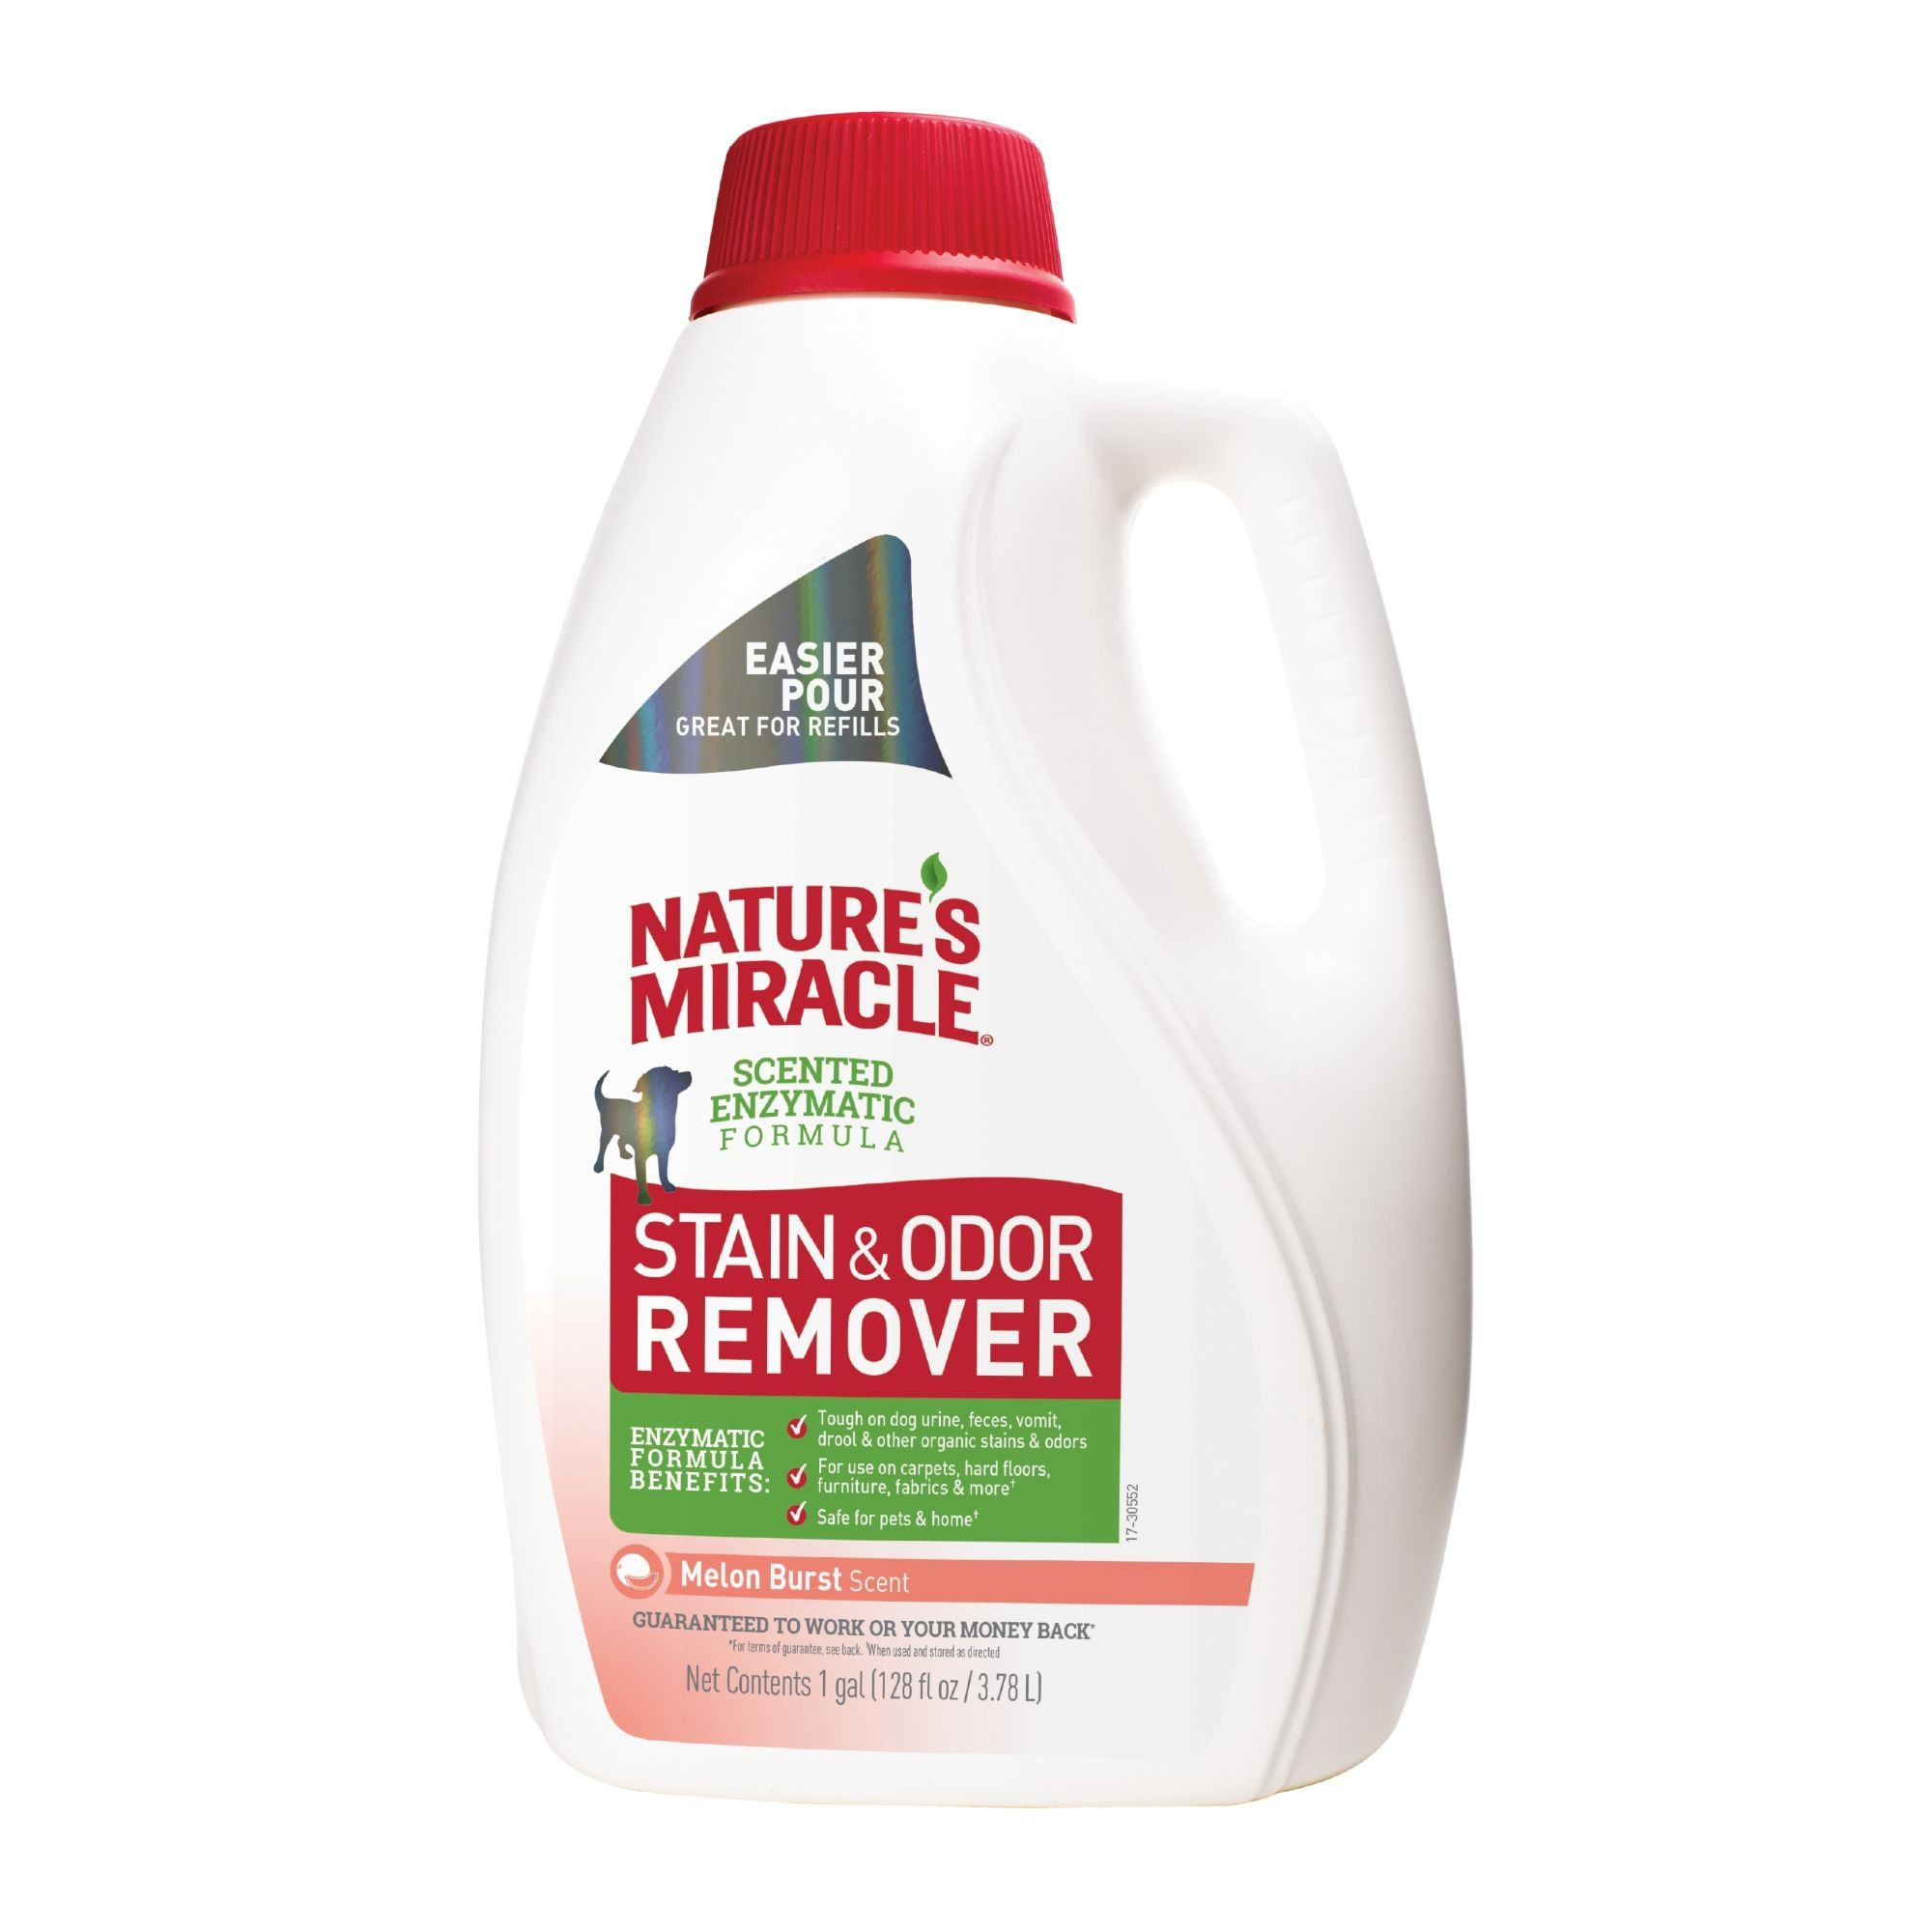 "Nature""s Miracle Stain & Odor Remover Melon Burst Scent"